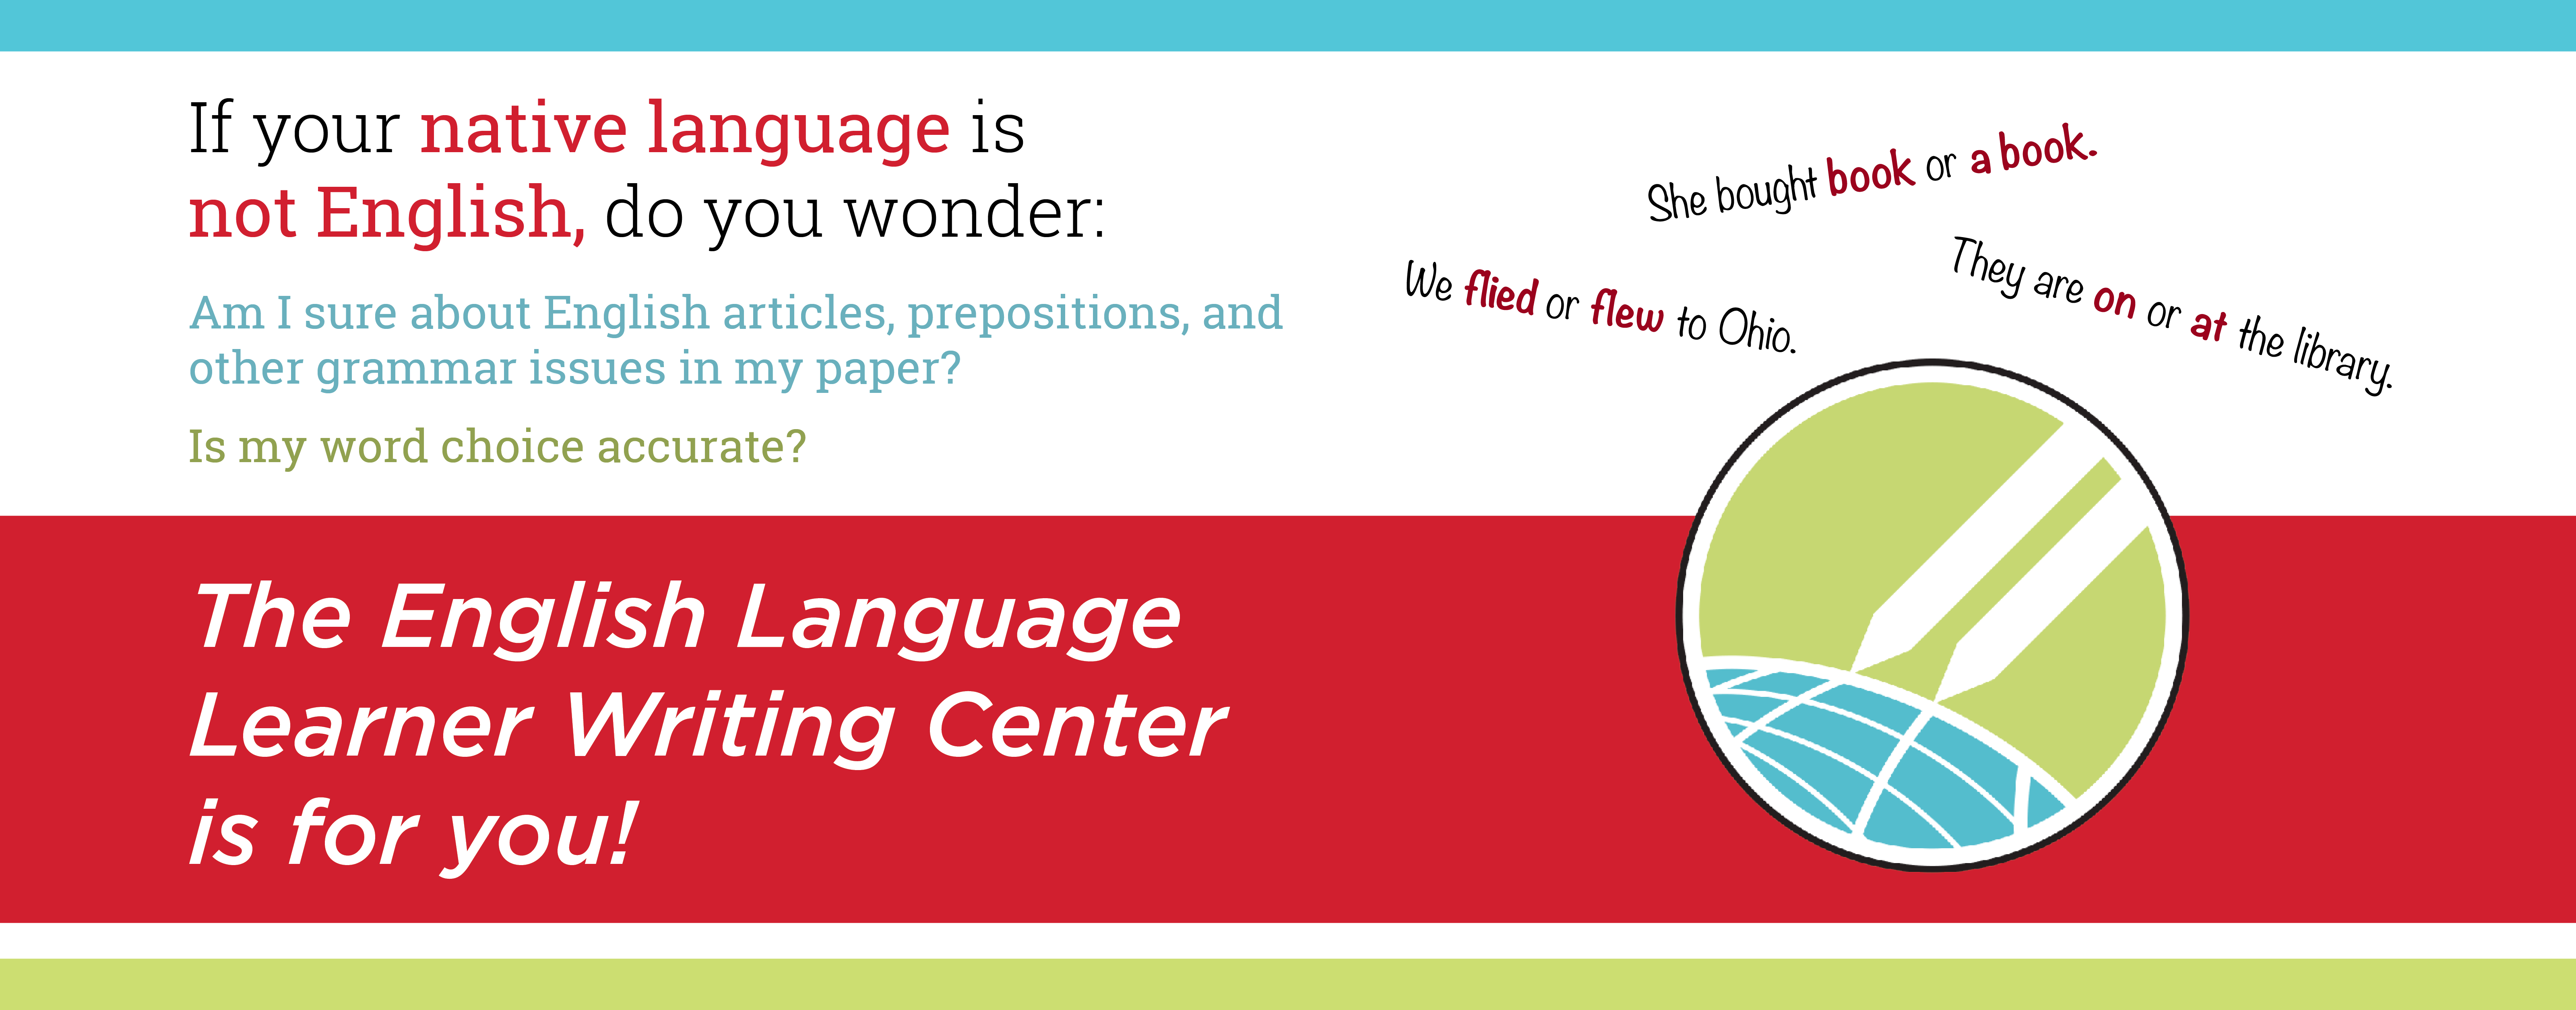 If your native language is not English, do you wonder: Am I sure about English articles, prepositions, and other grammar issues in my paper?  Is my writing clear and concise? Is my word choice accurate?  The English Language Learner Writing Center is for you!